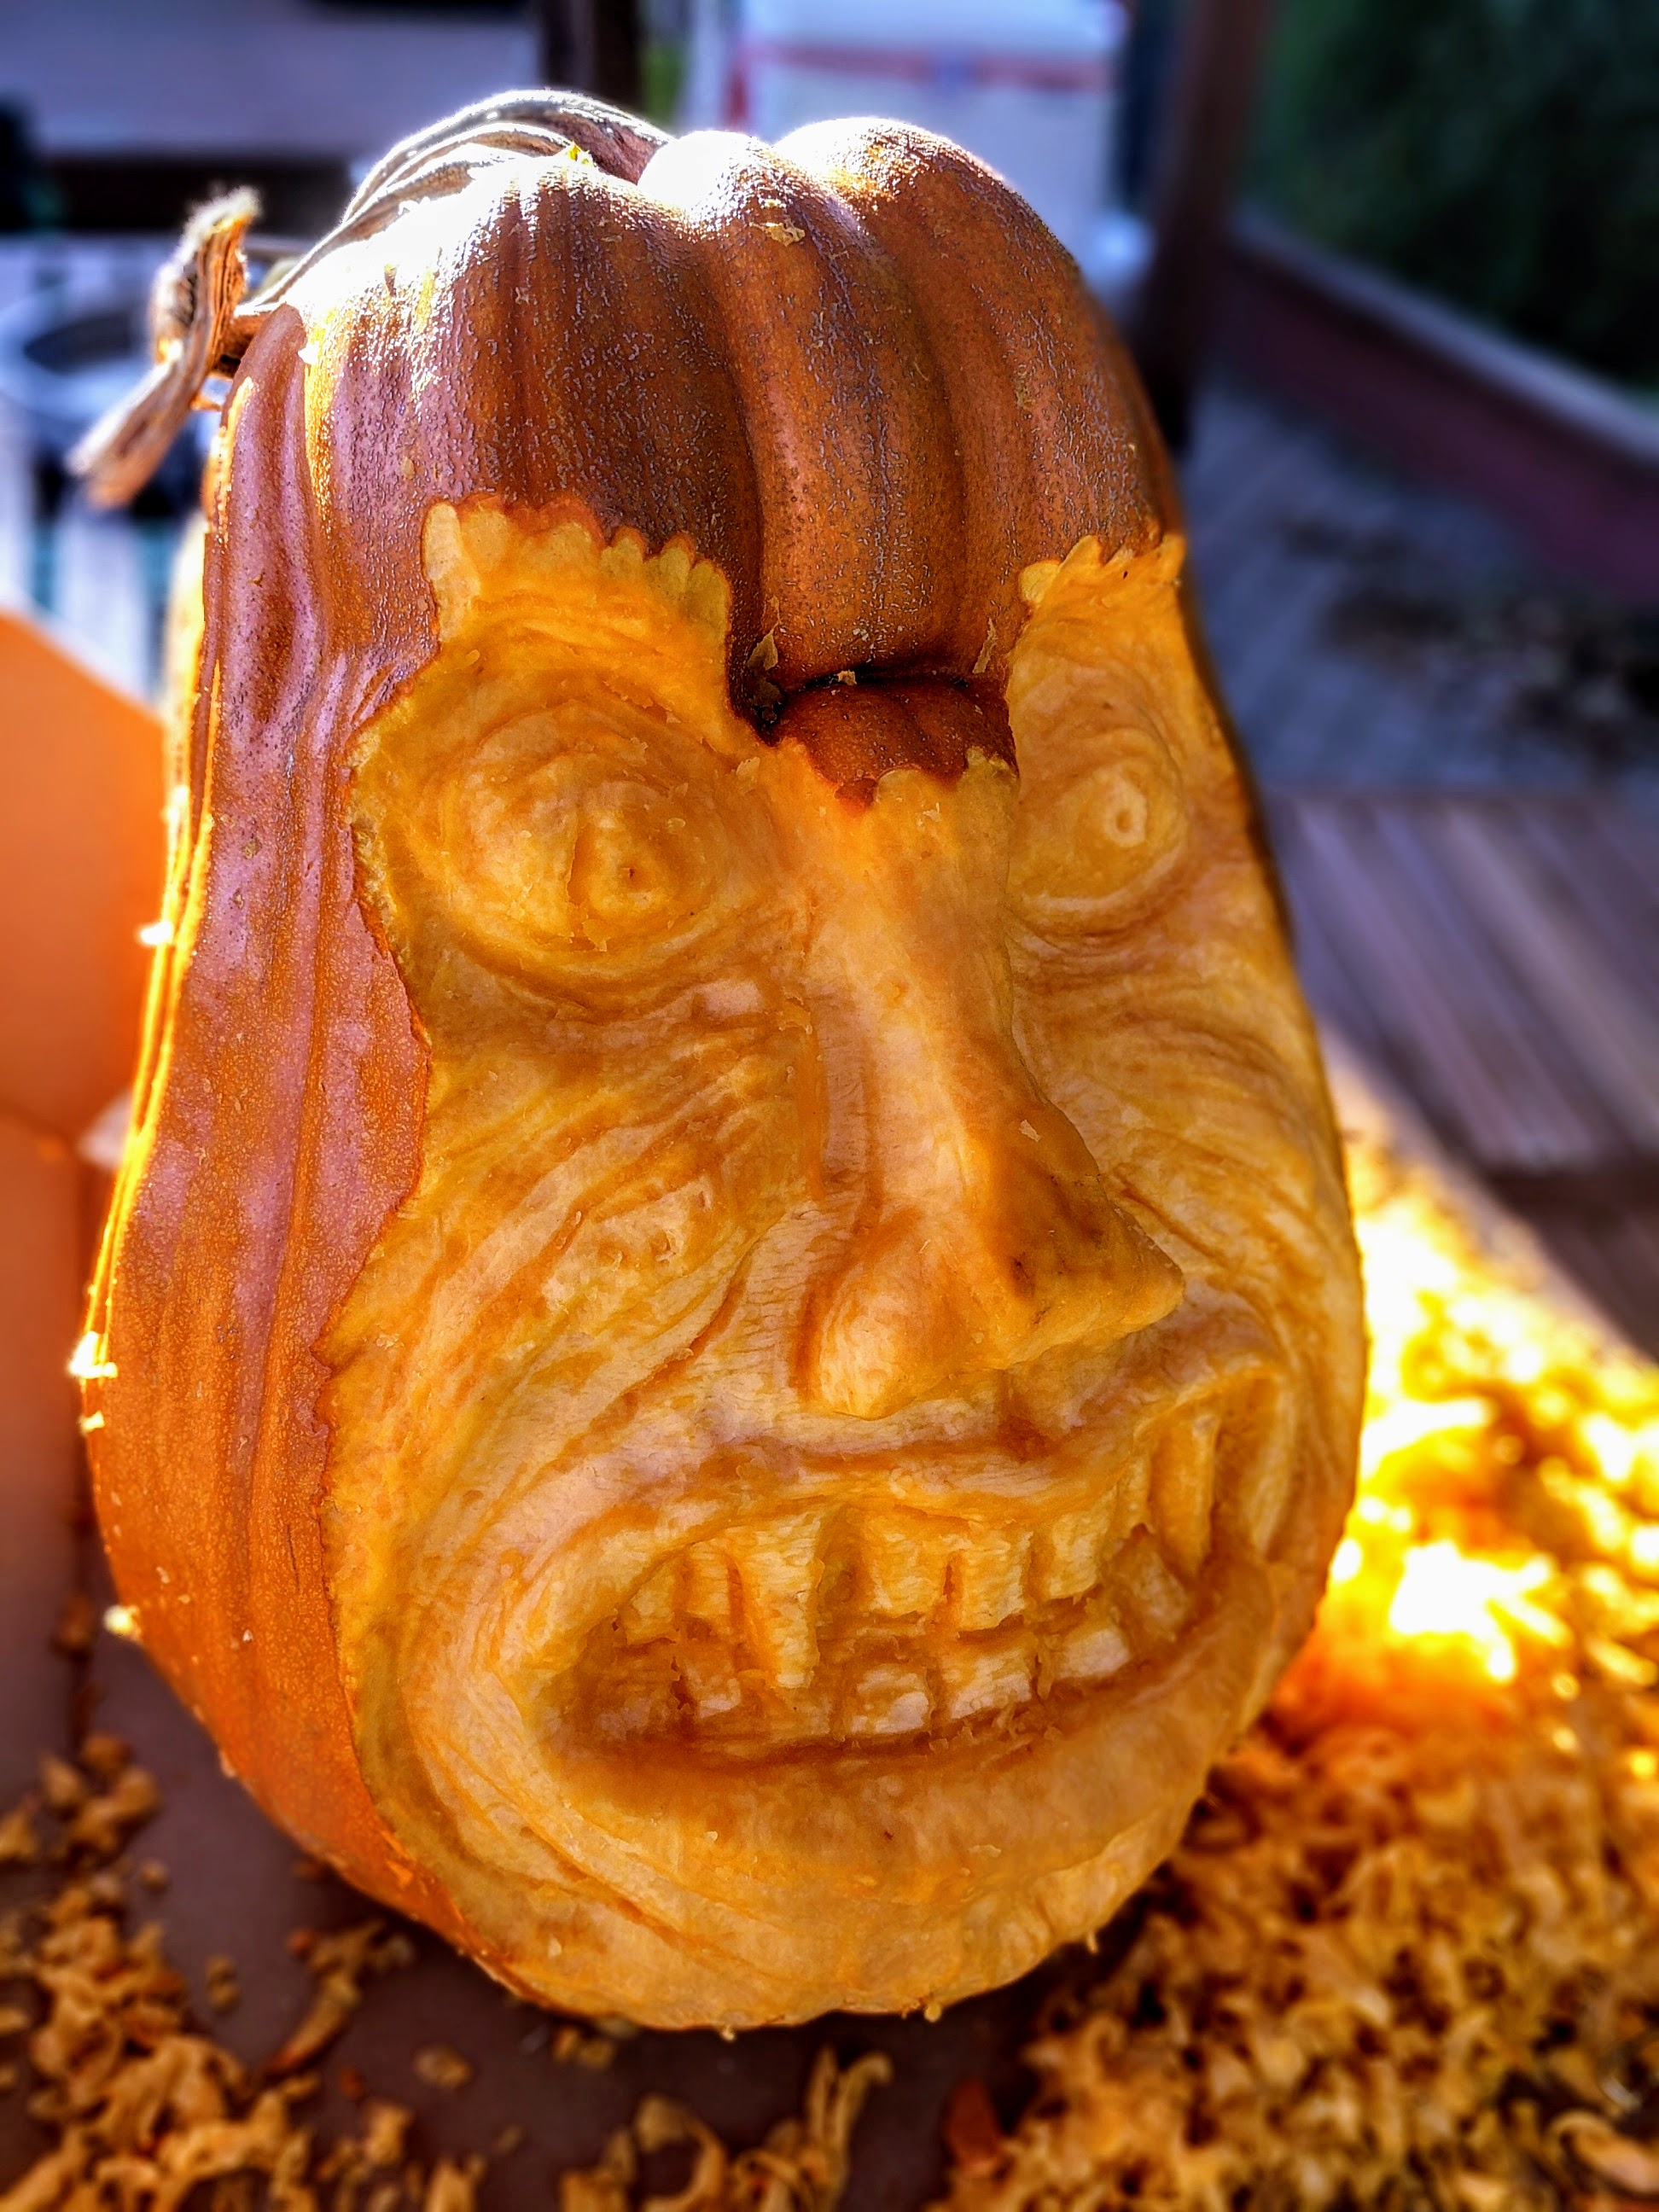 faced carved in a pumpkin